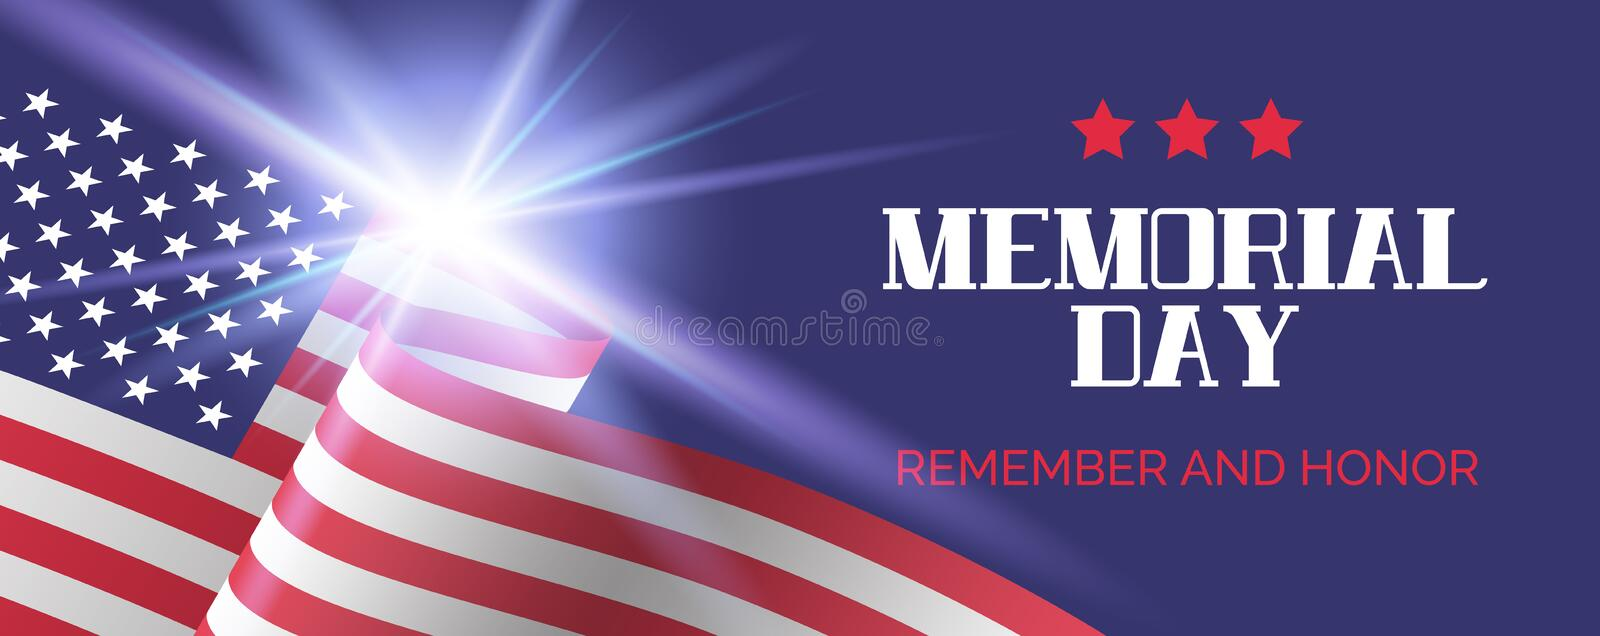 Memorial day. Remember and honor. Vector greeting banner template royalty free illustration